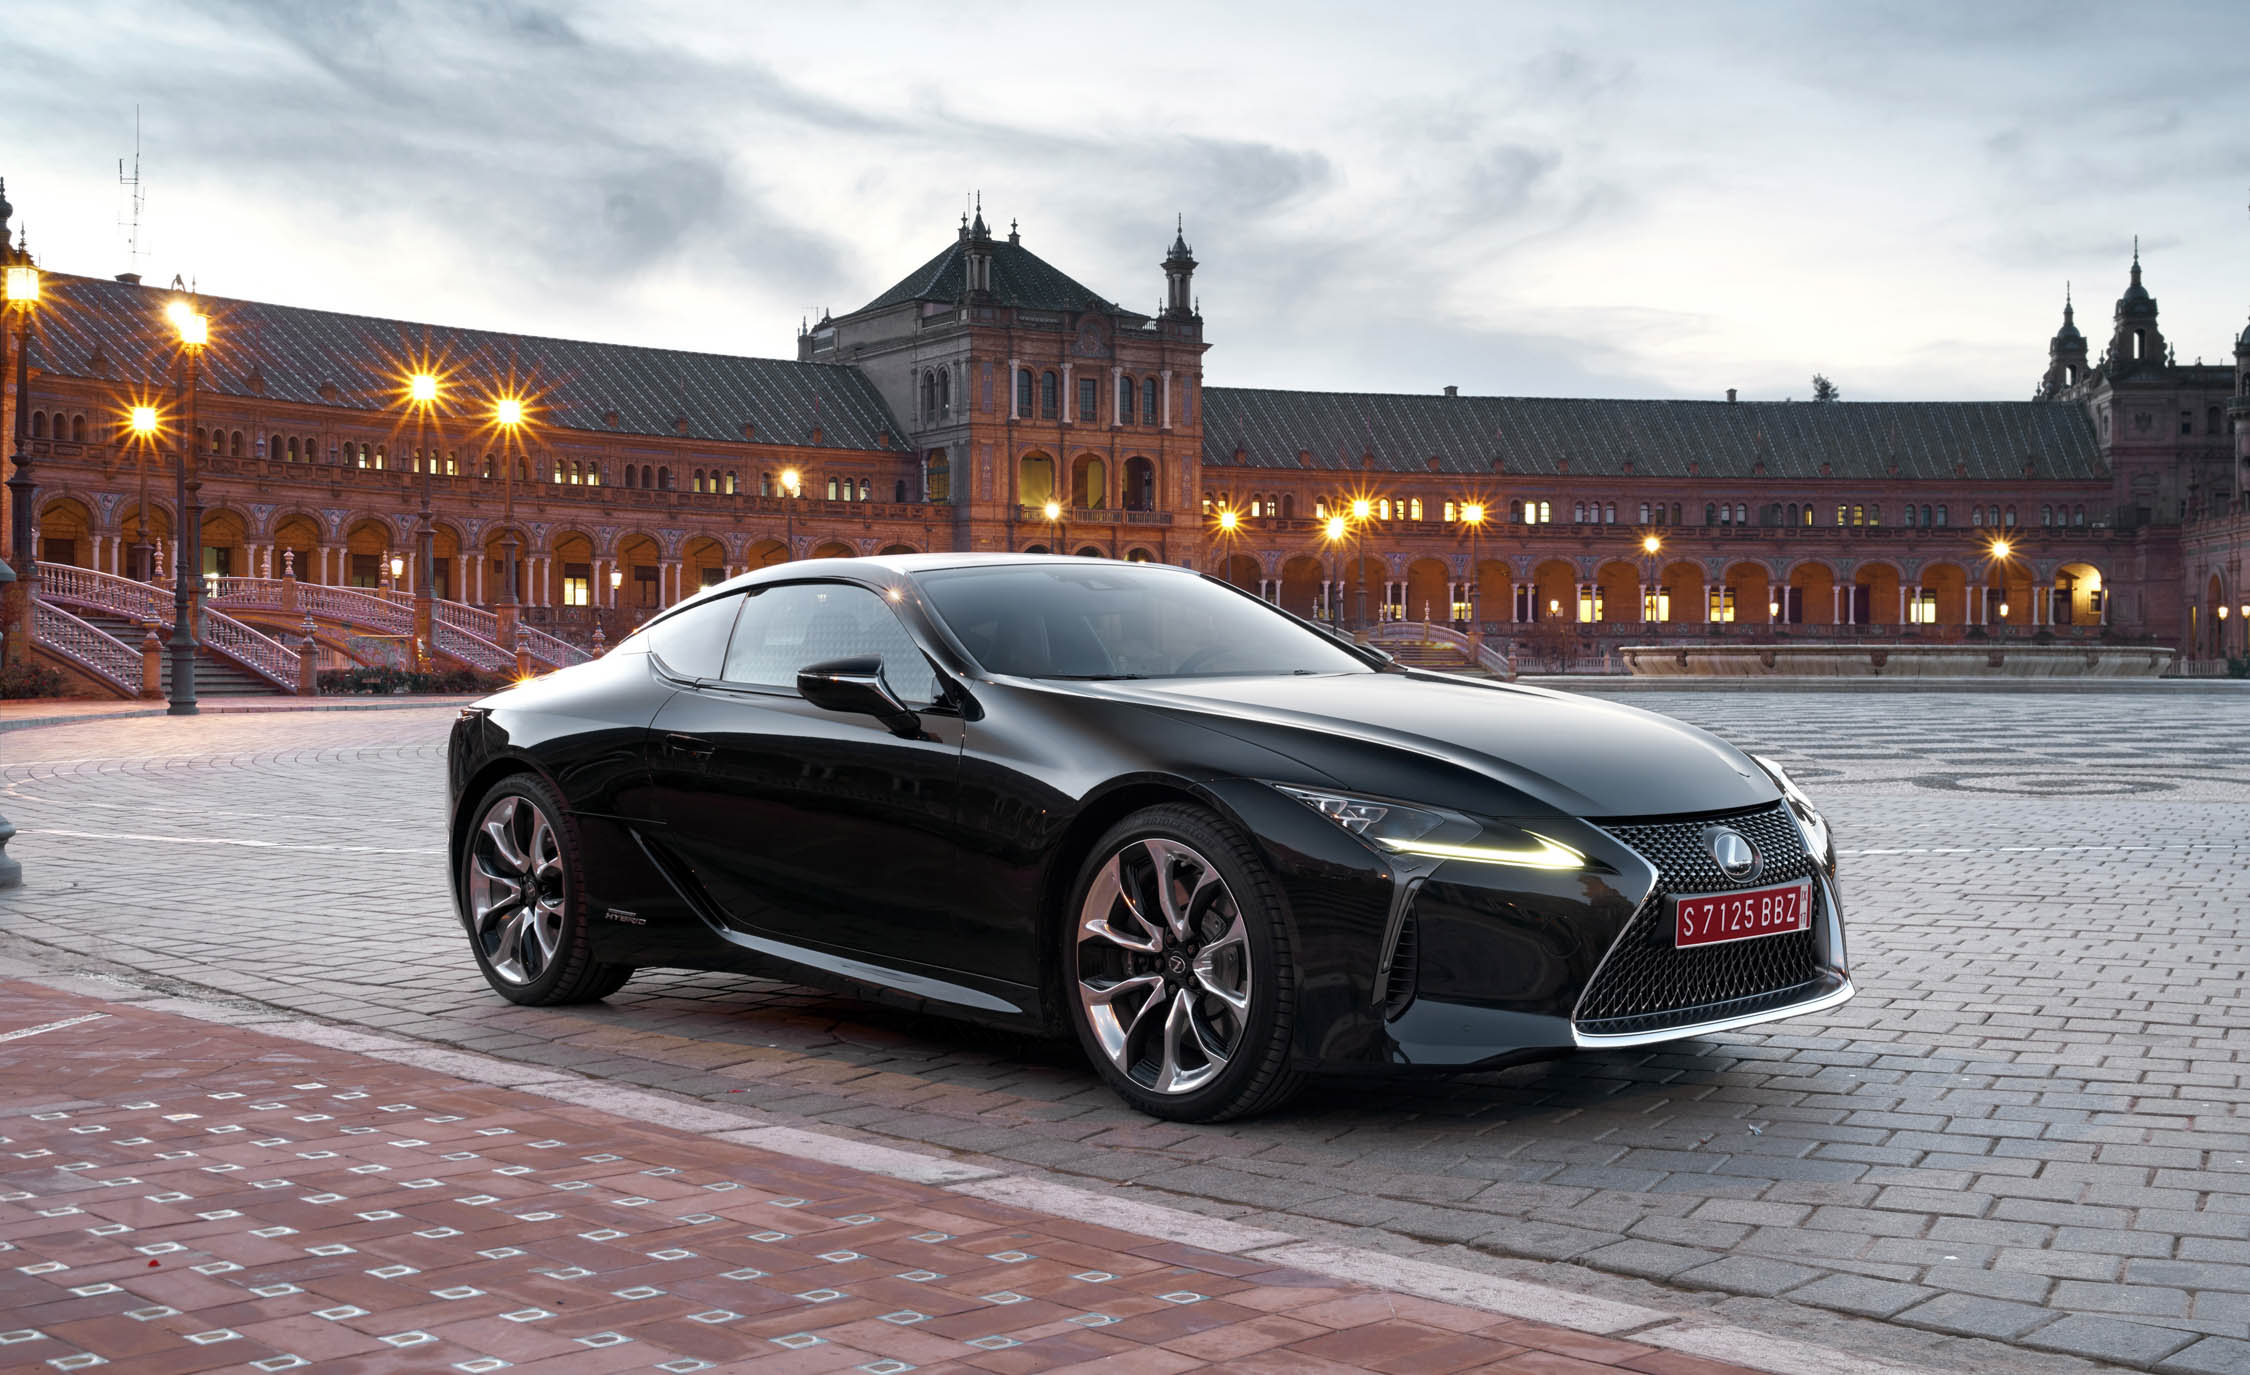 2018 Lexus Lc 500h Black Exterior (View 49 of 84)